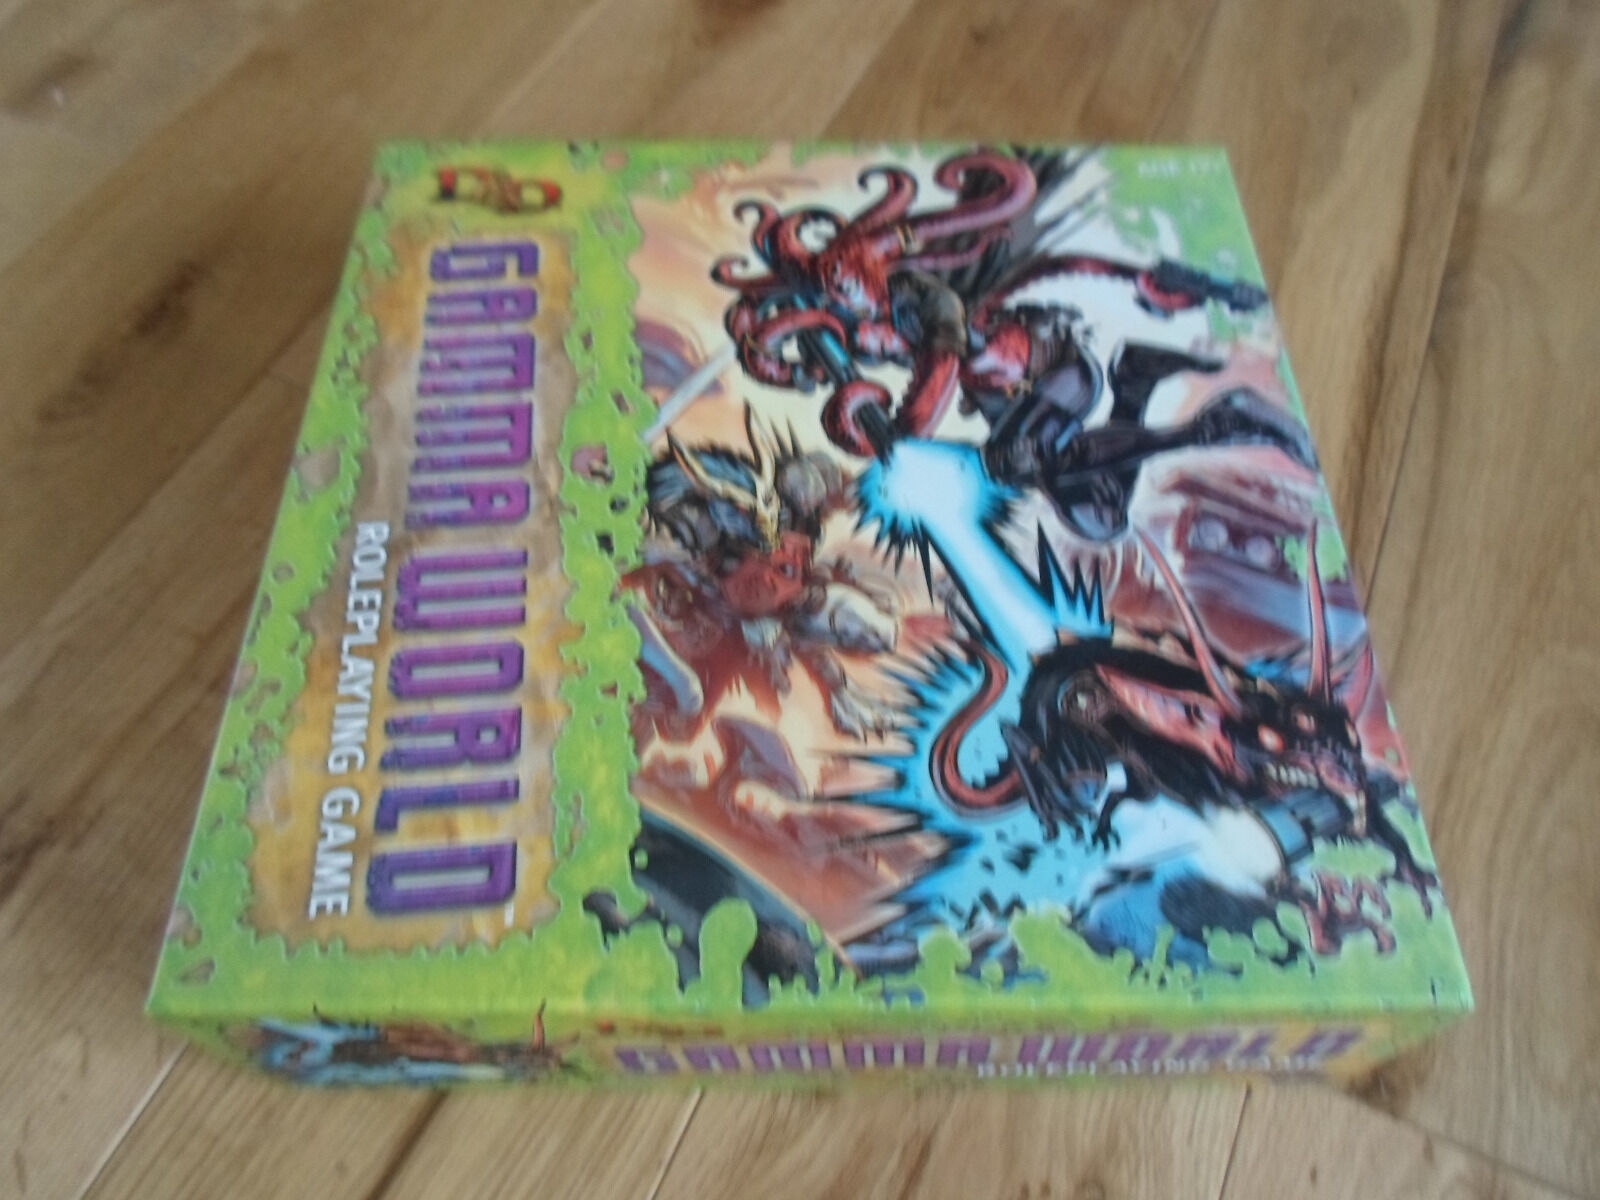 Complete Gamma World Roleplaying Game RPG  Rare Collection Collection Collection in Great Condition  40819c